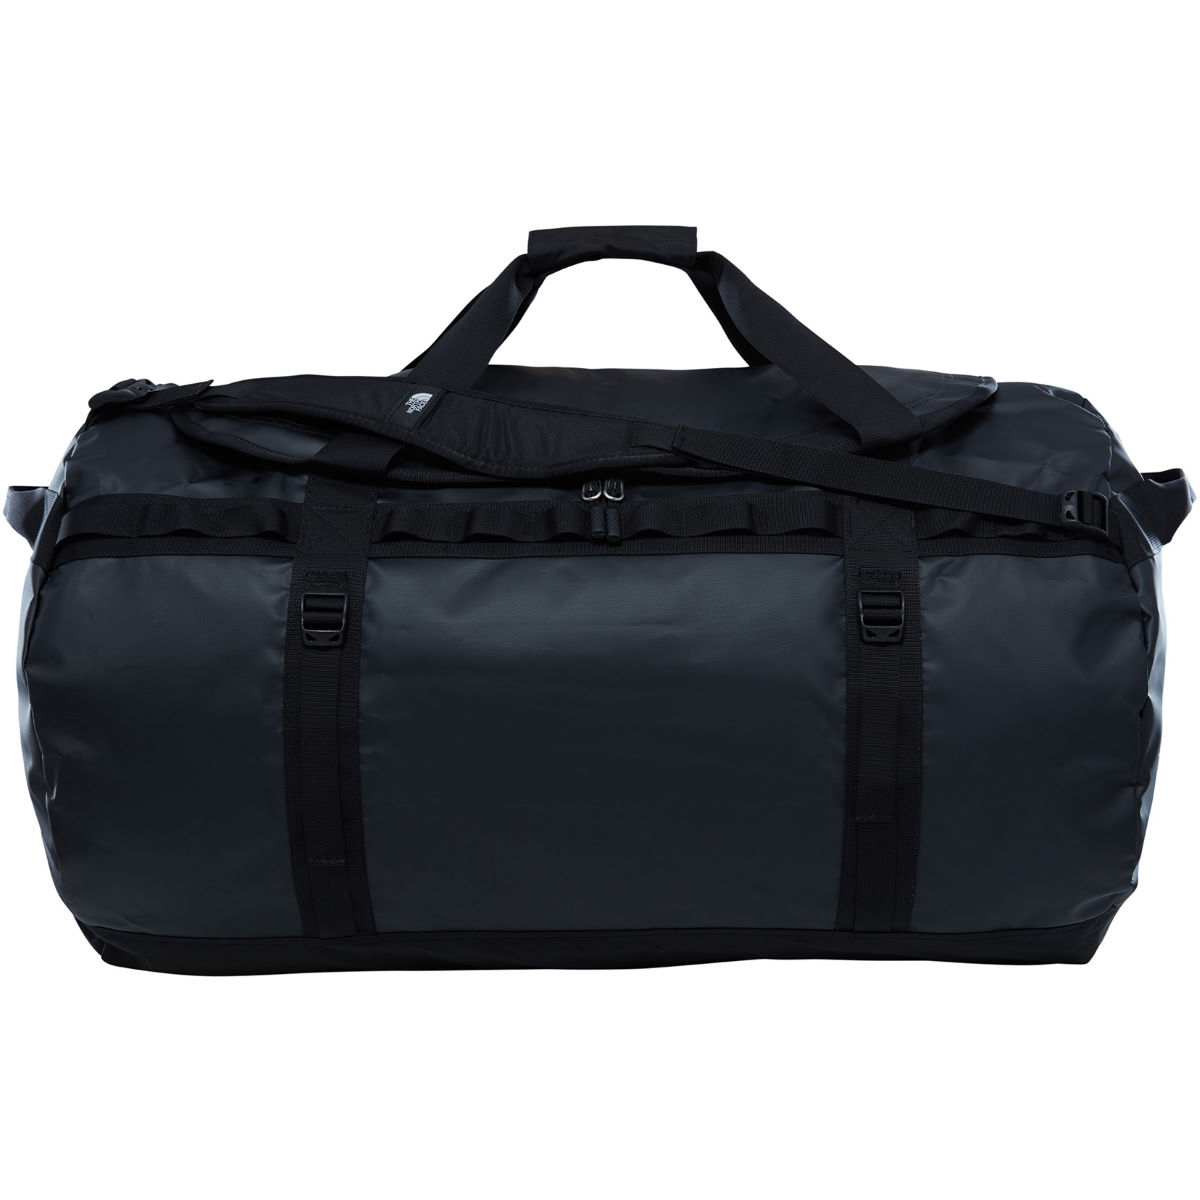 The North Face The North Face Base Camp Duffel - XL   Duffle Bags